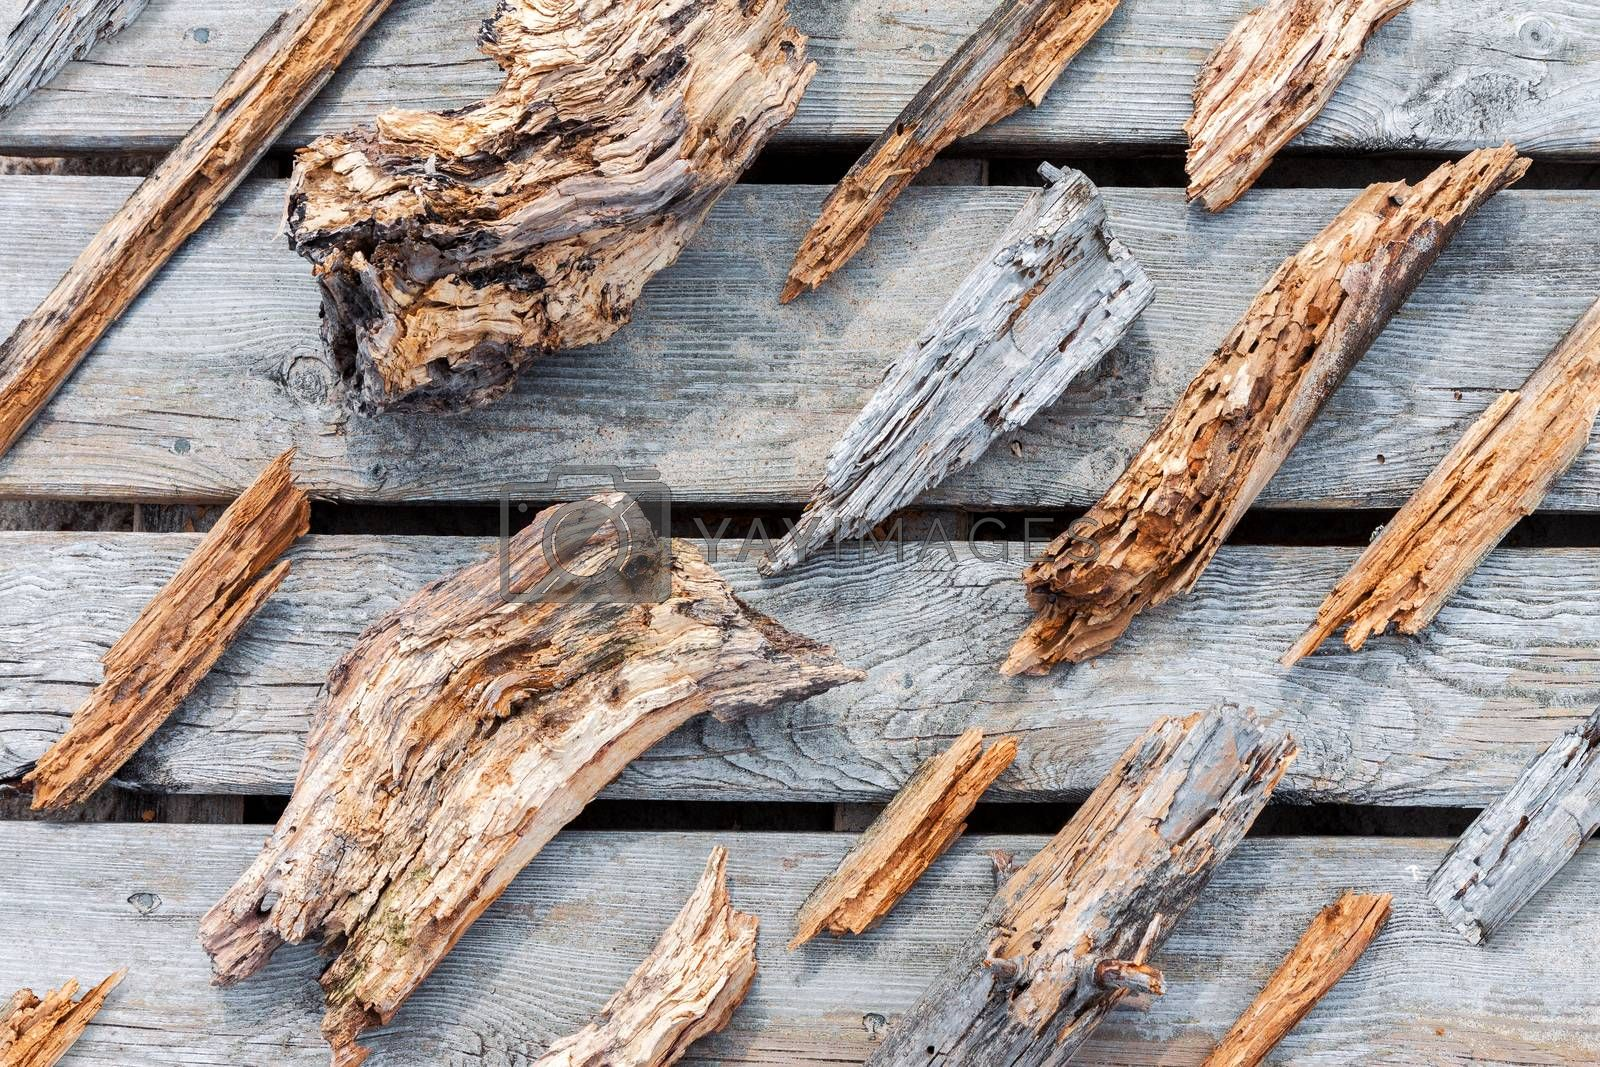 Old rotten wooden pieces and fragments well organized on wooden plank background, top view